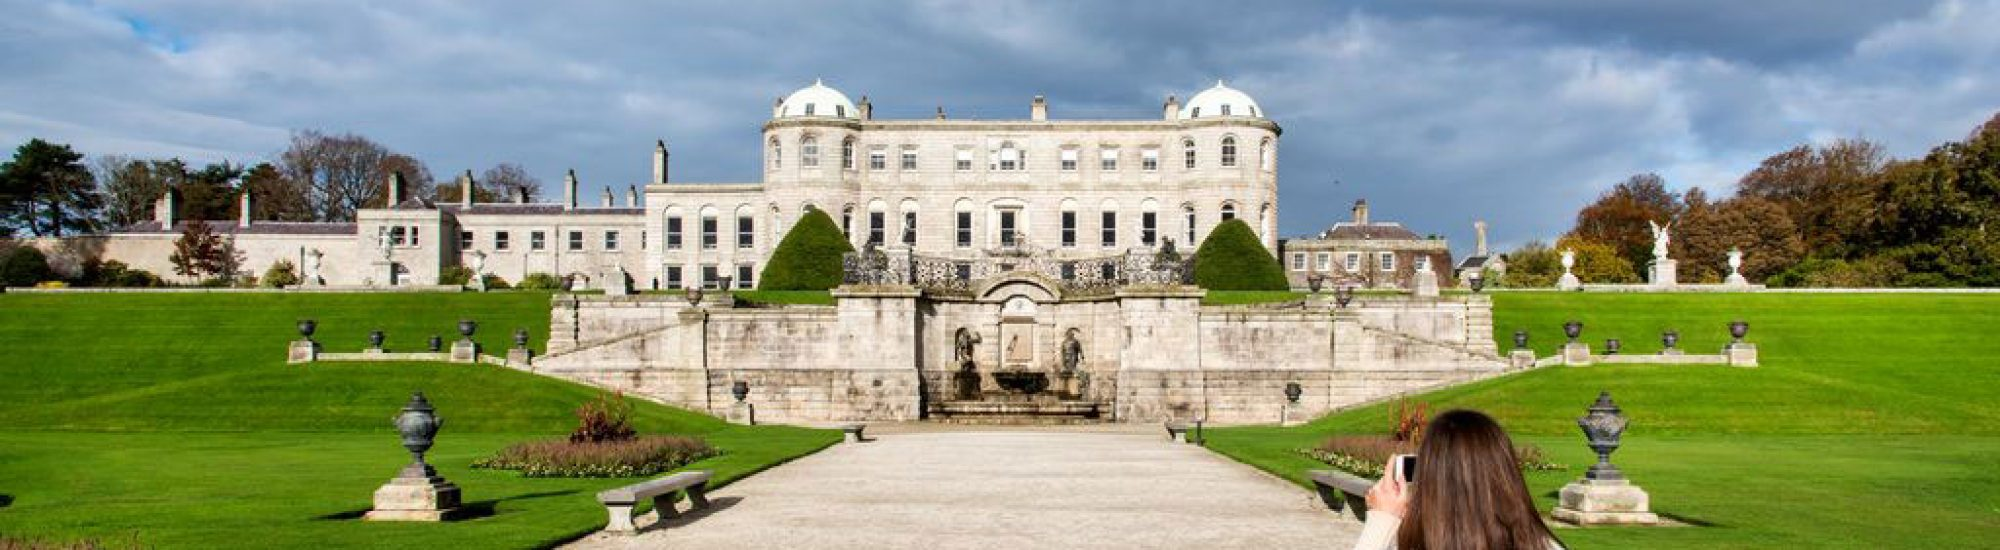 Day Tours to Powerscourt Estate and Gardens Ireland